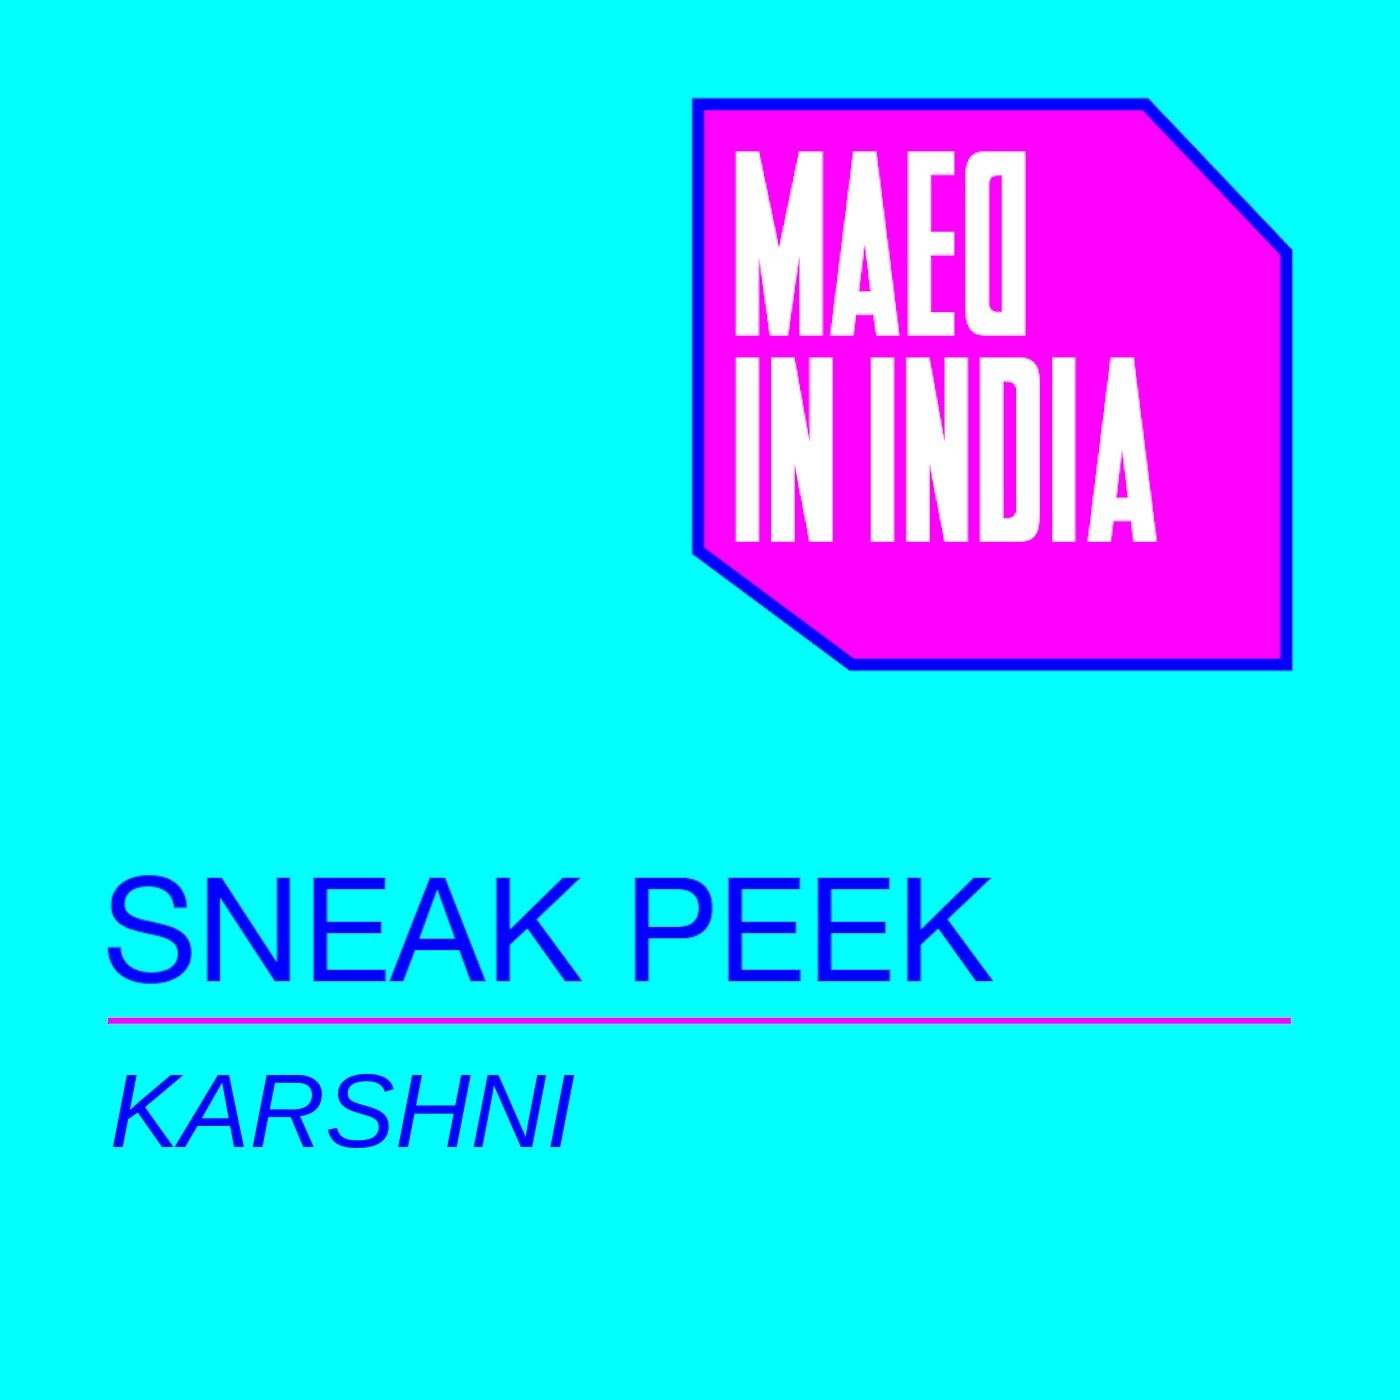 Sneak Peek: Karshni